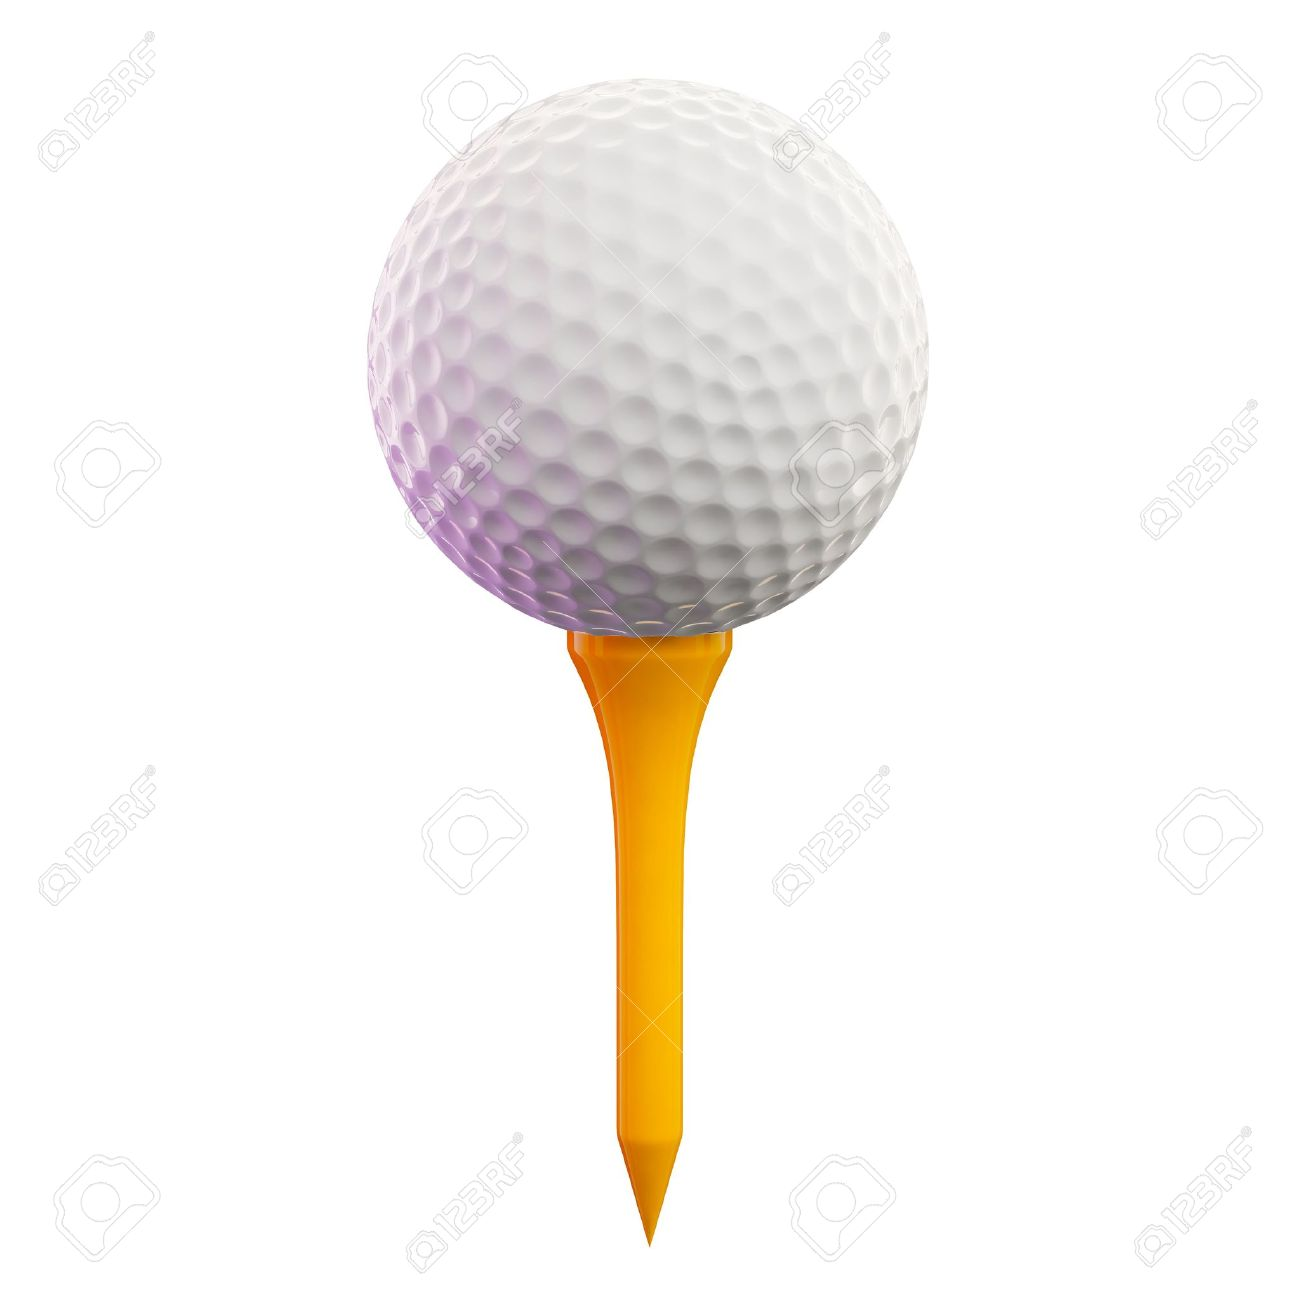 3d Render Of A Golf Ball On Tee Stock Photo Picture And Royalty Free Image Image 7729677